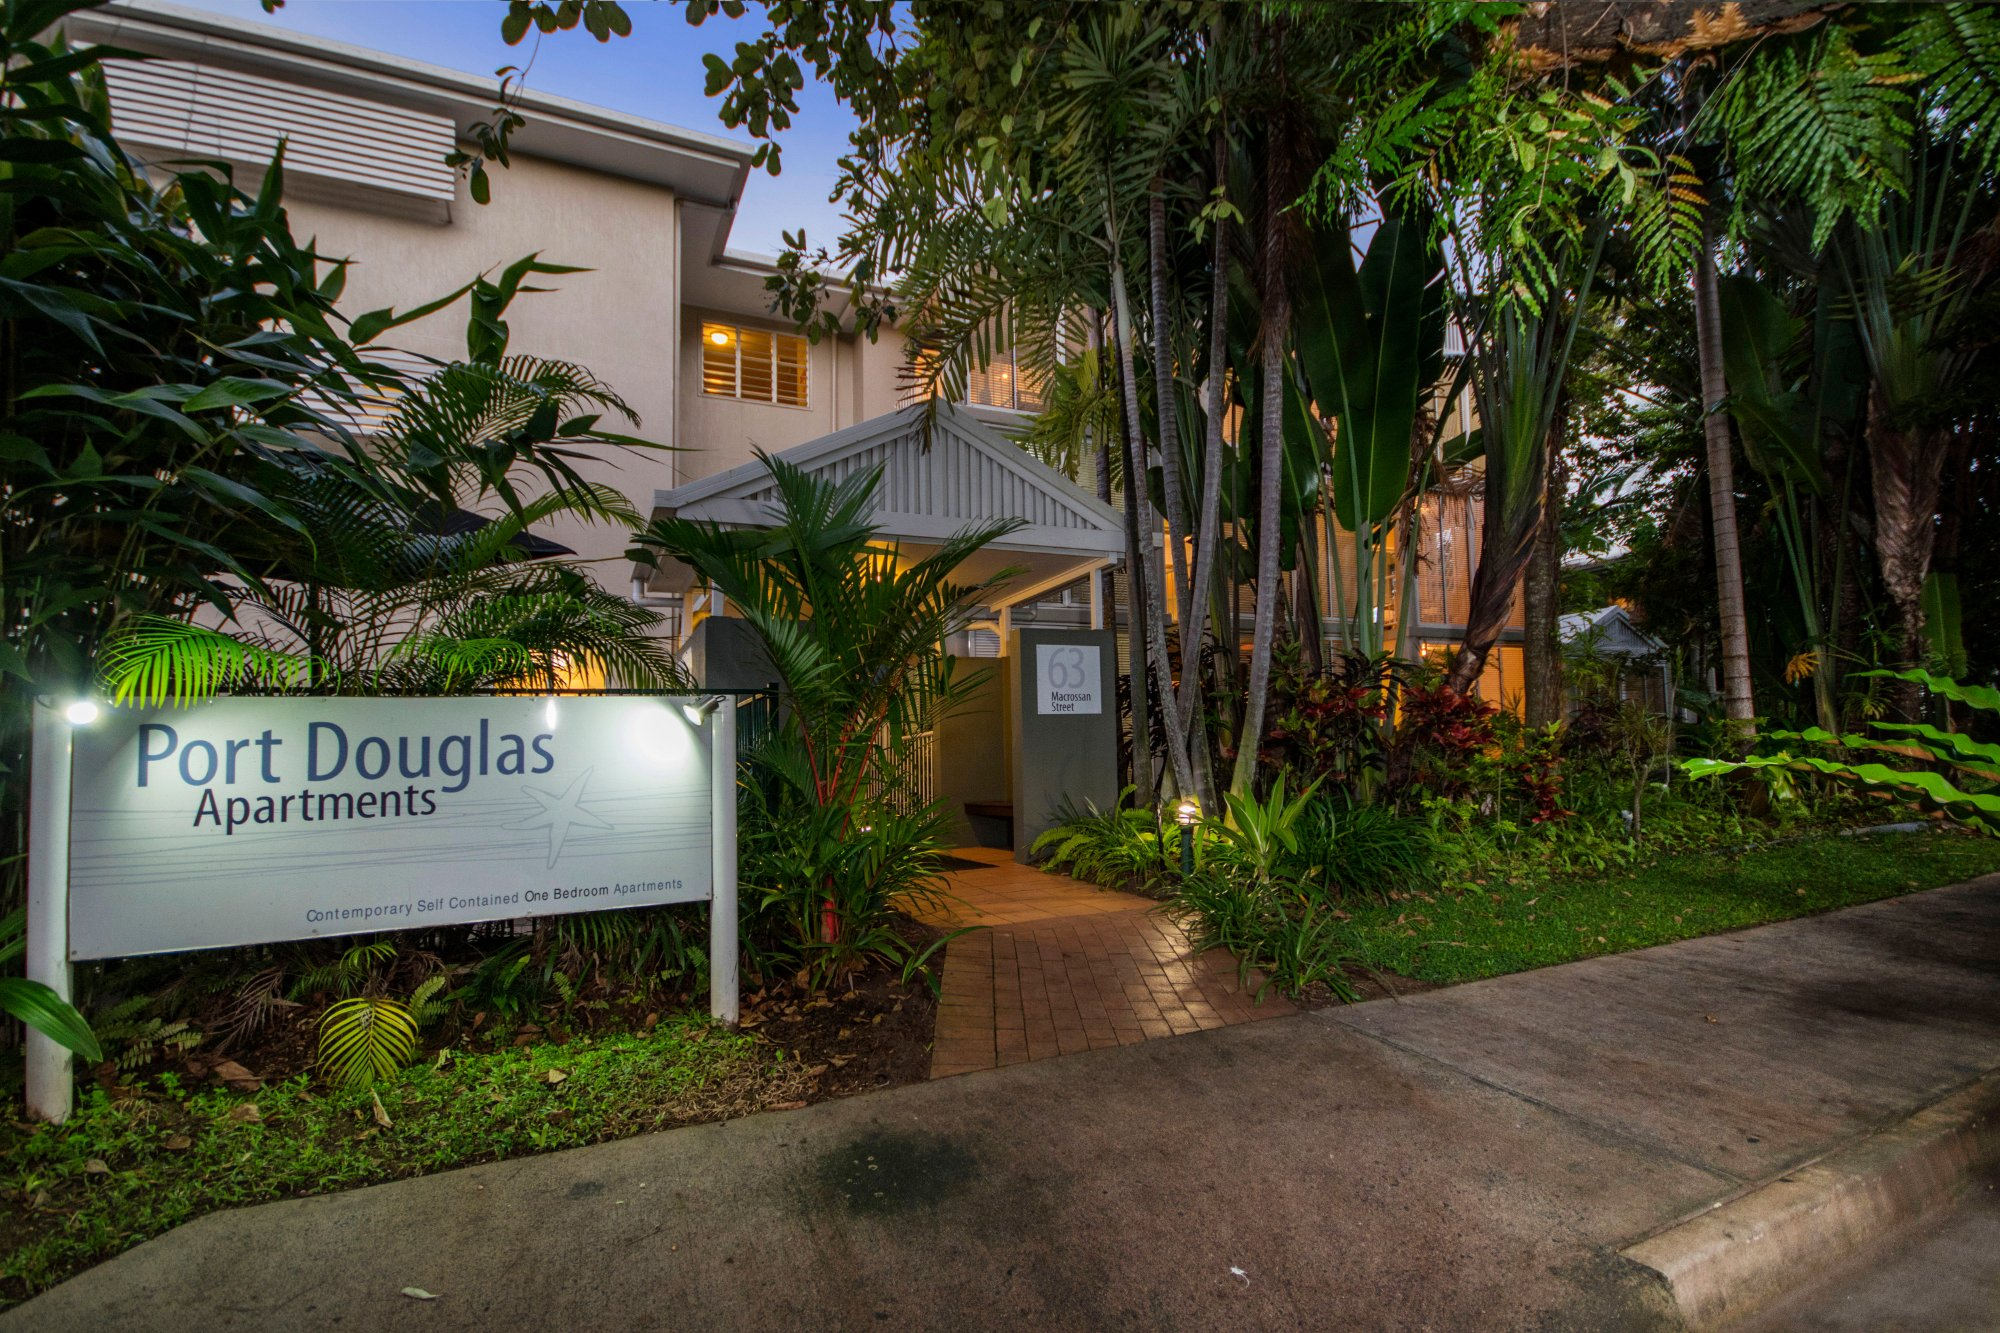 Port Douglas Apartments